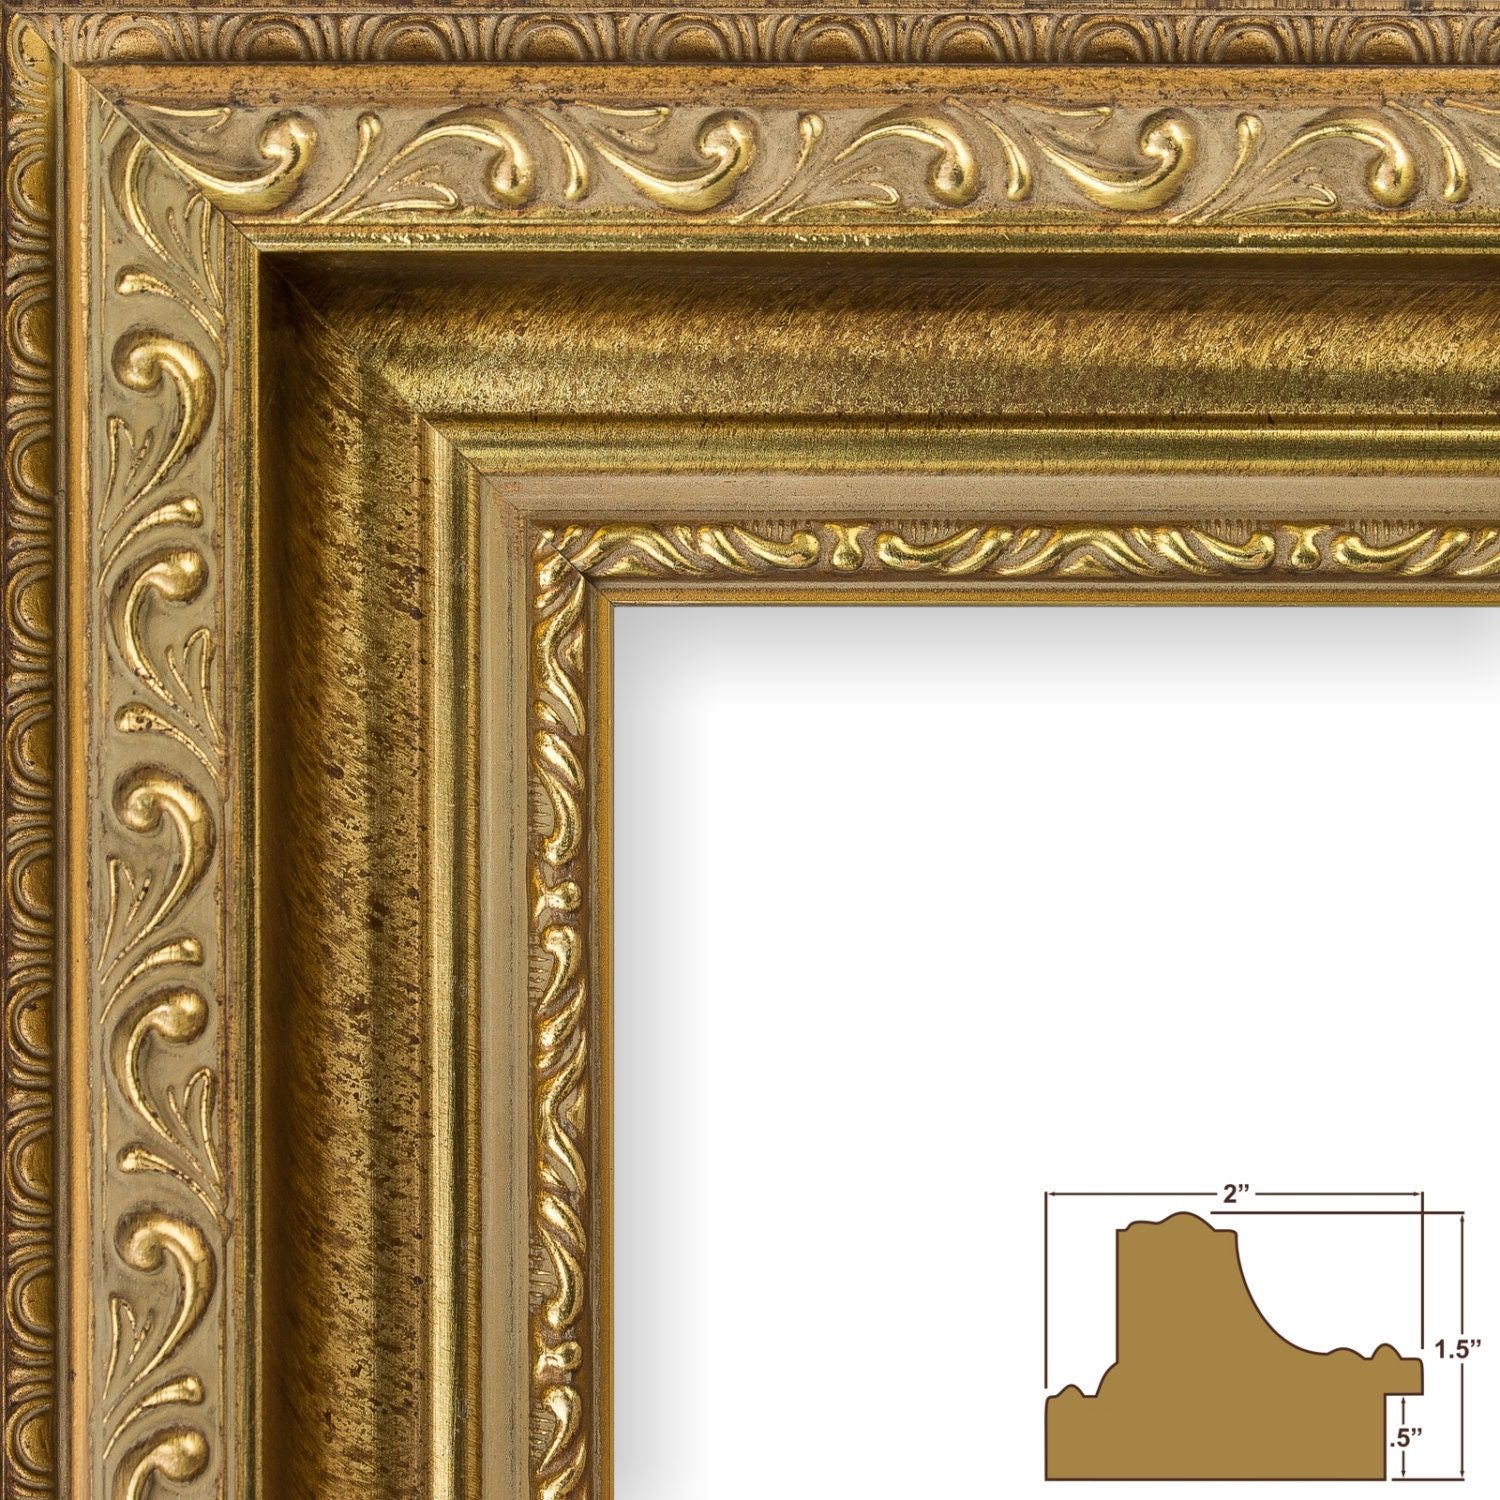 Craig frames 18x24 inch brushed antique gold picture frame 5099 jeuxipadfo Gallery